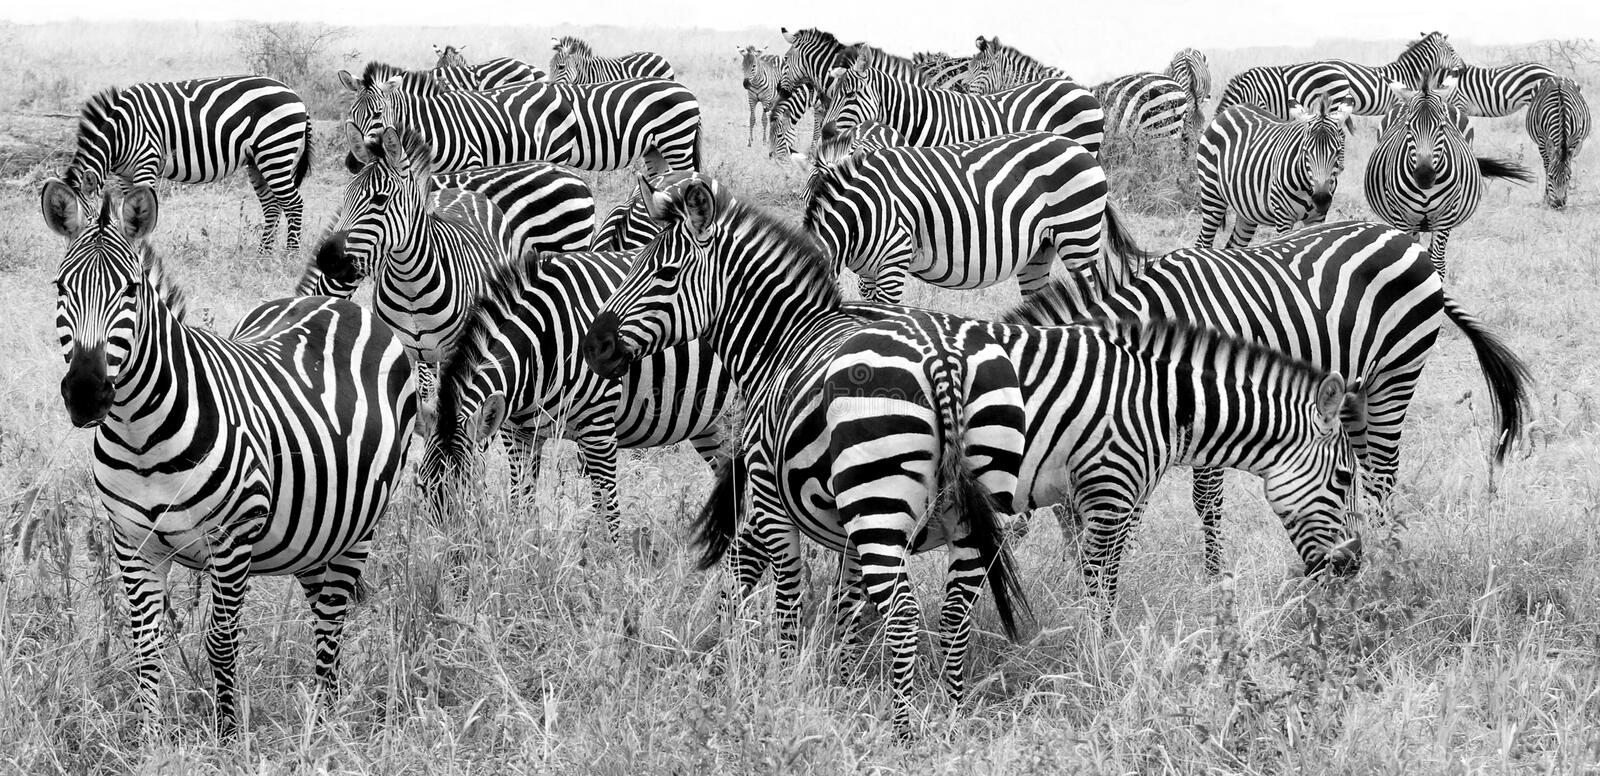 Herd of zebra's at a national park in Africa royalty free stock photo